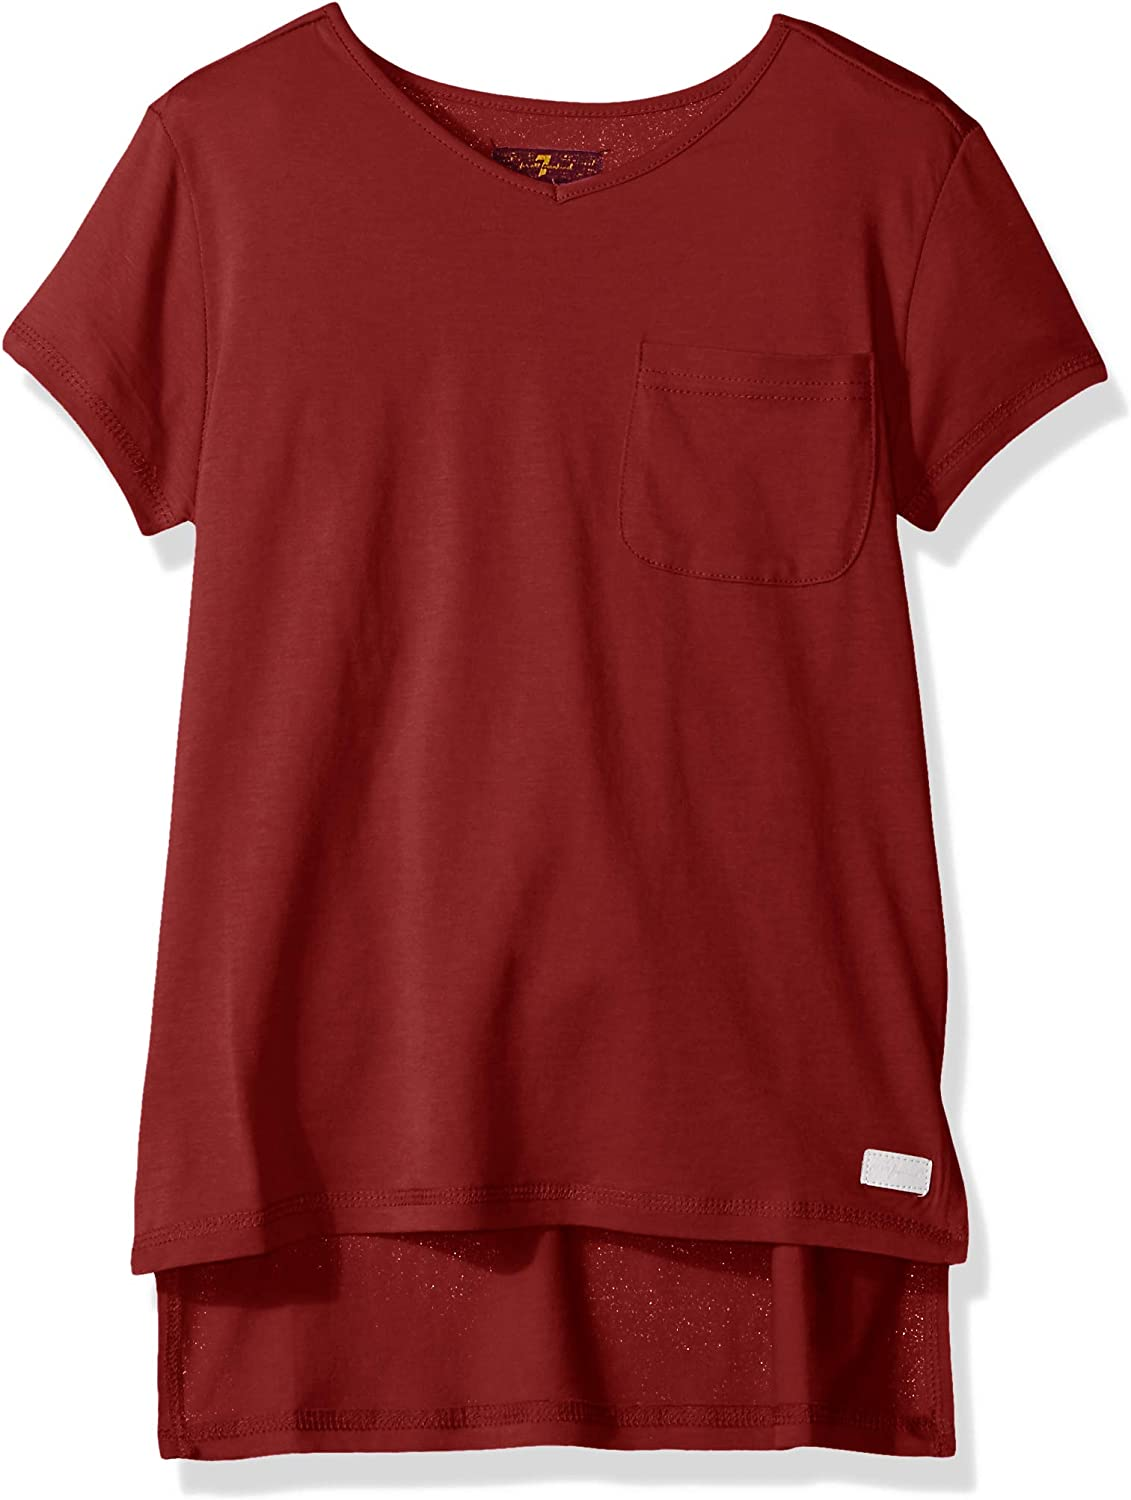 7 For All Mankind Girls High Low T-Shirt